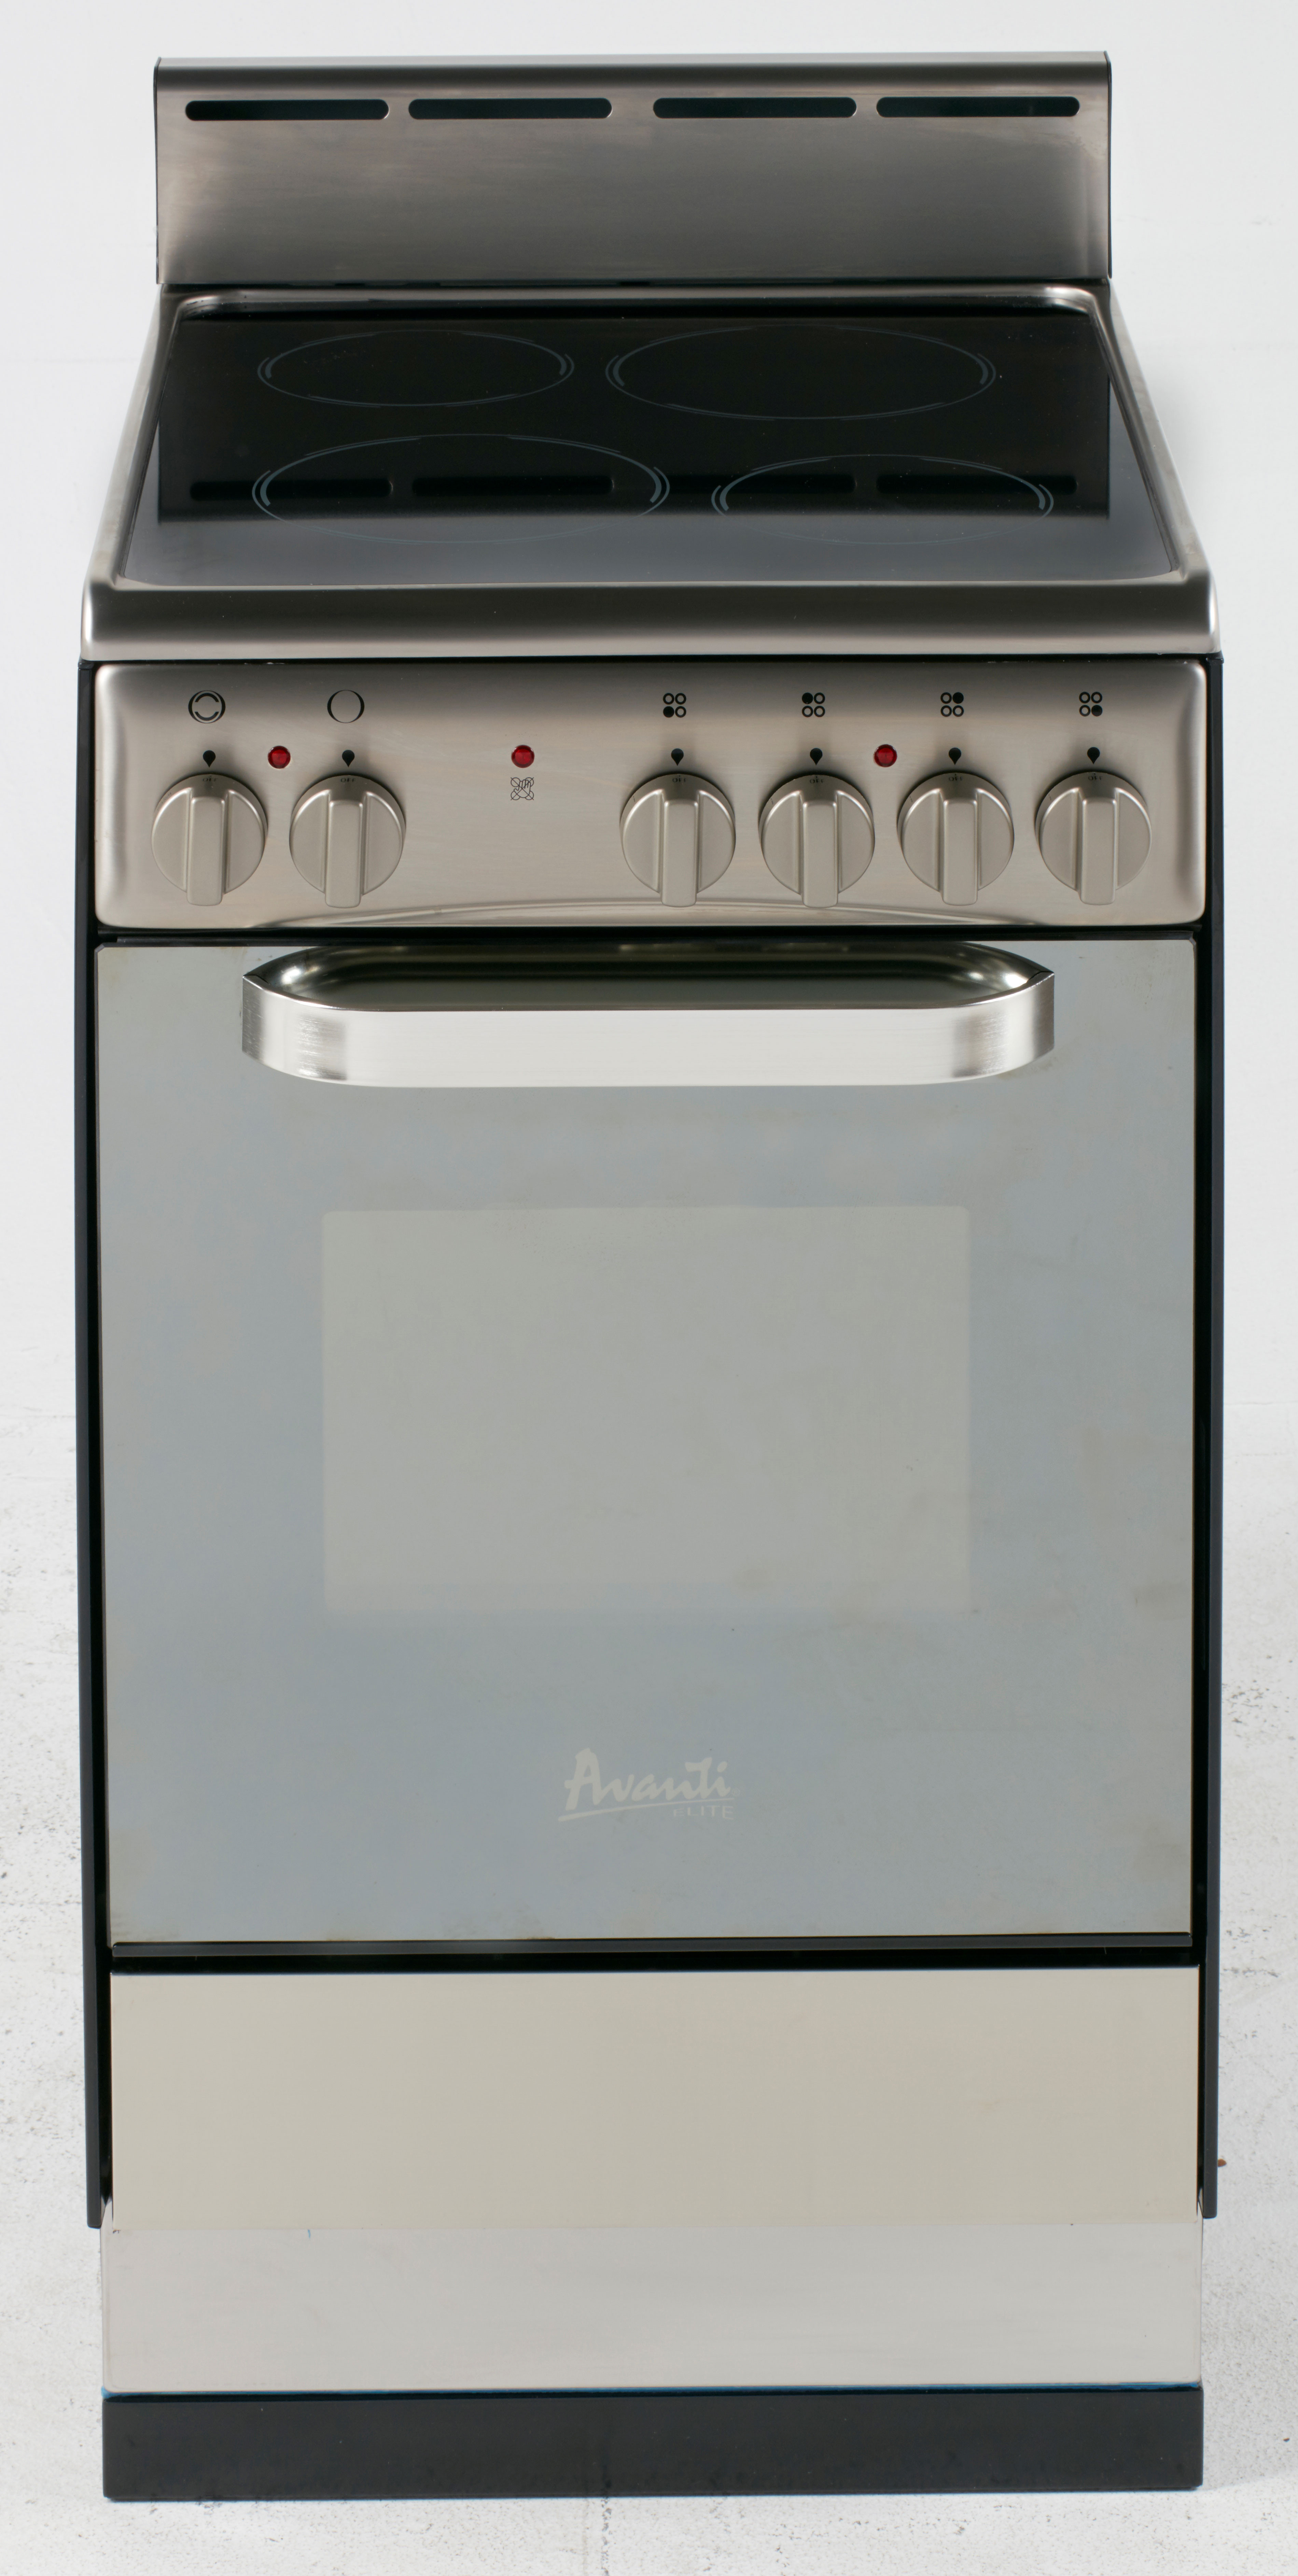 Avanti Cooking Ranges - AJMadison.com